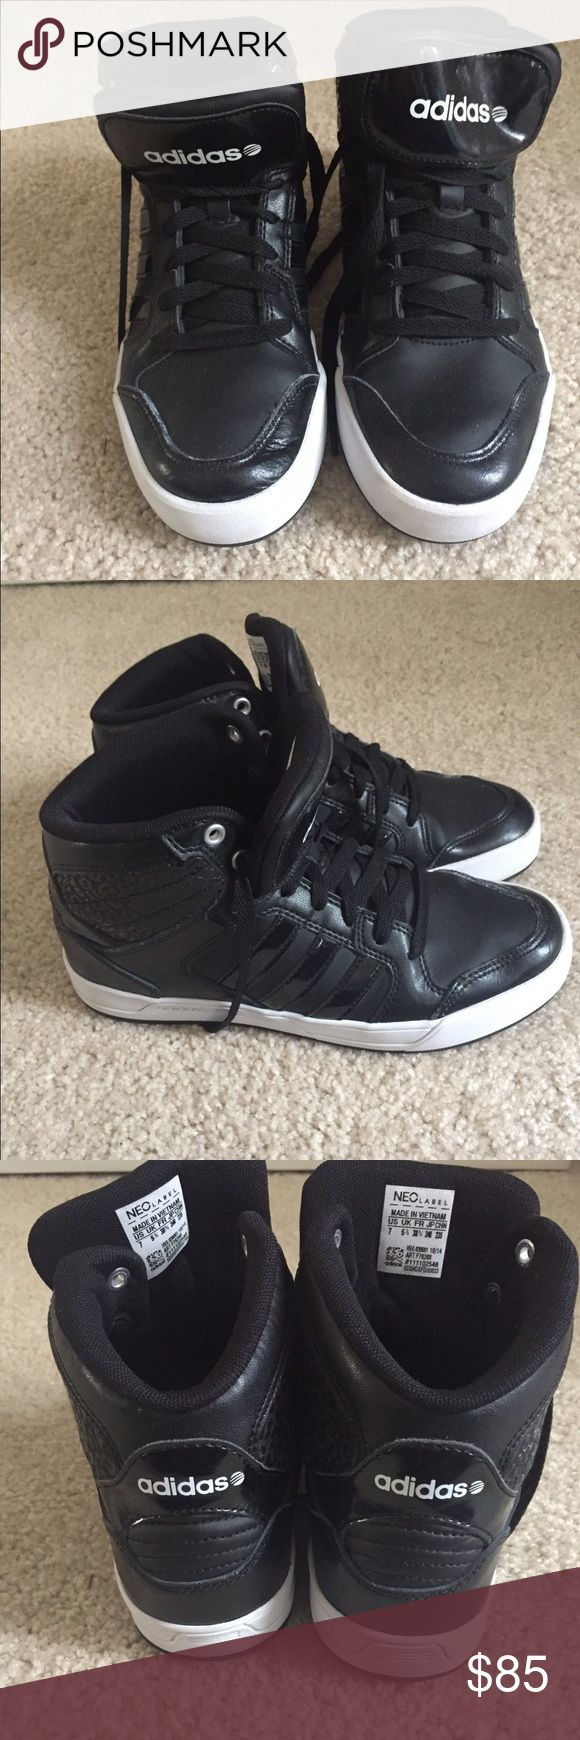 Adidas High-Top Sneakers Only worn three times! Stylish, black high top sneakers Adidas Shoes Sneakers